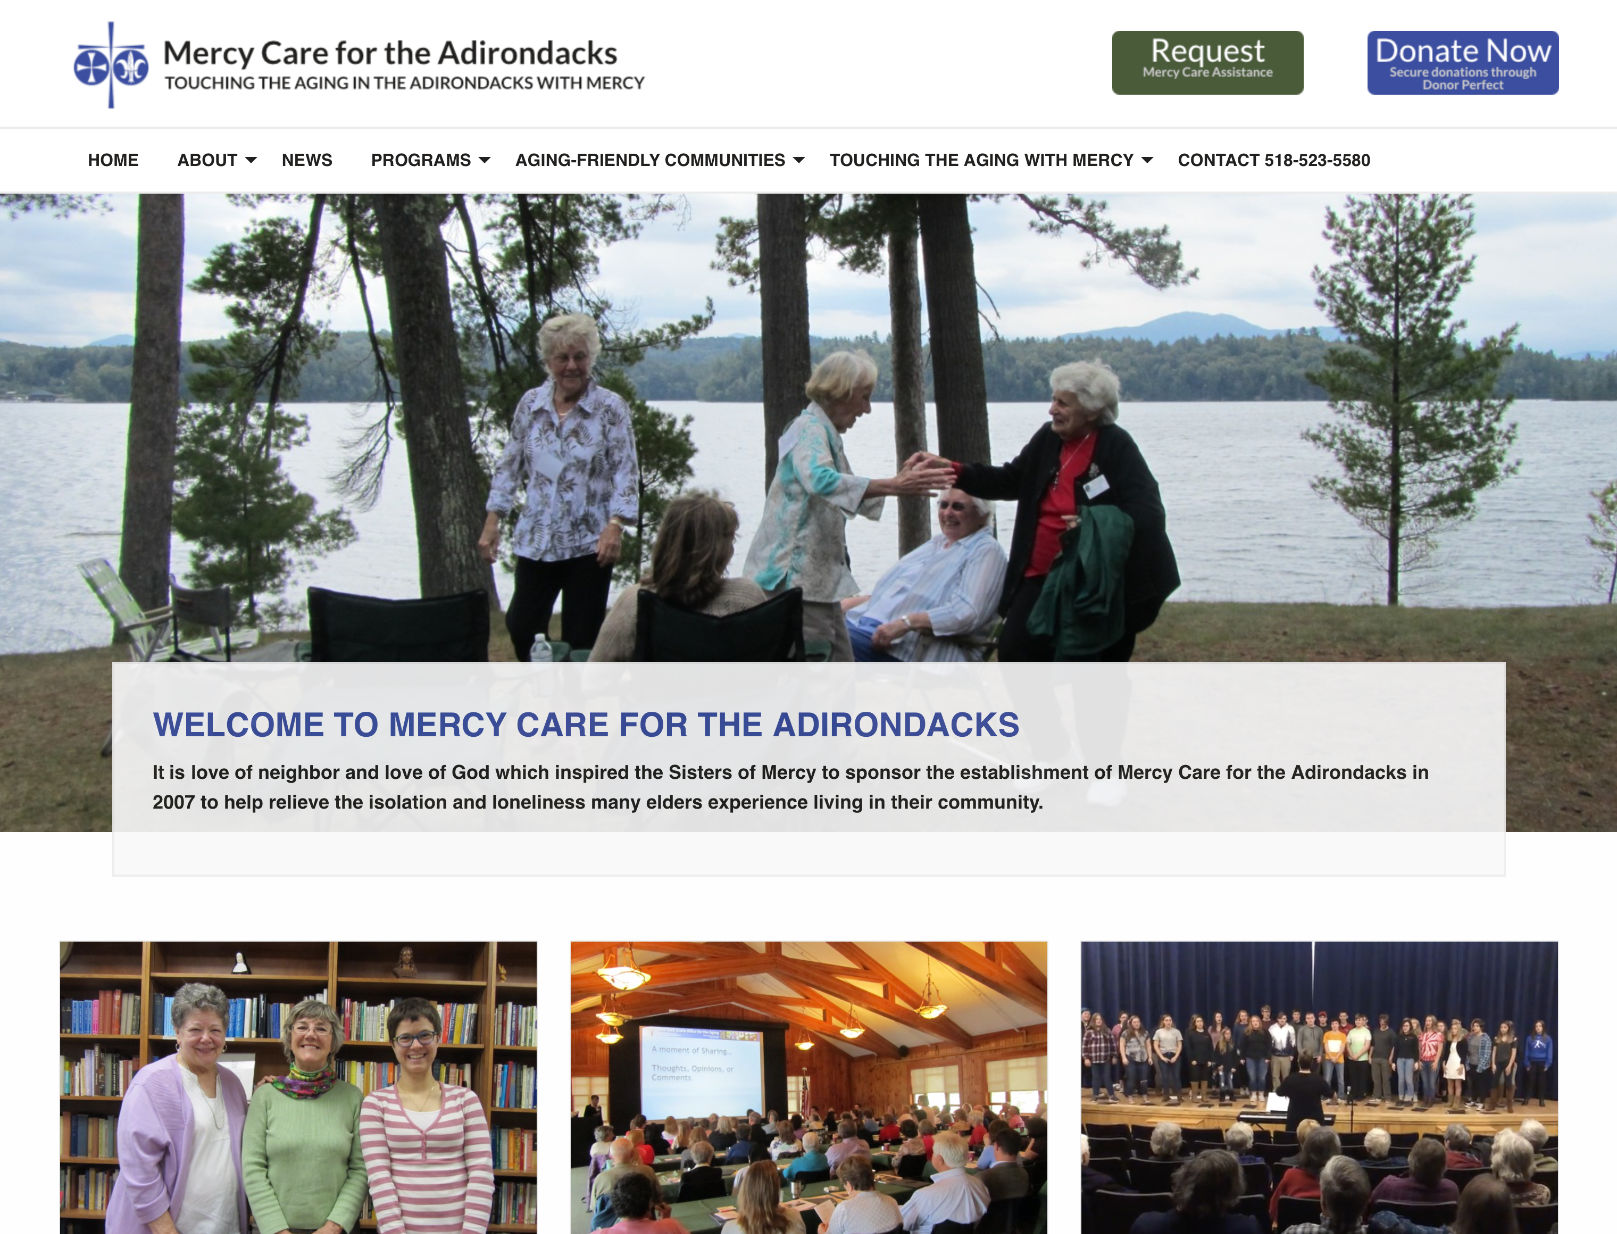 Mercy Care for the Adirondacks